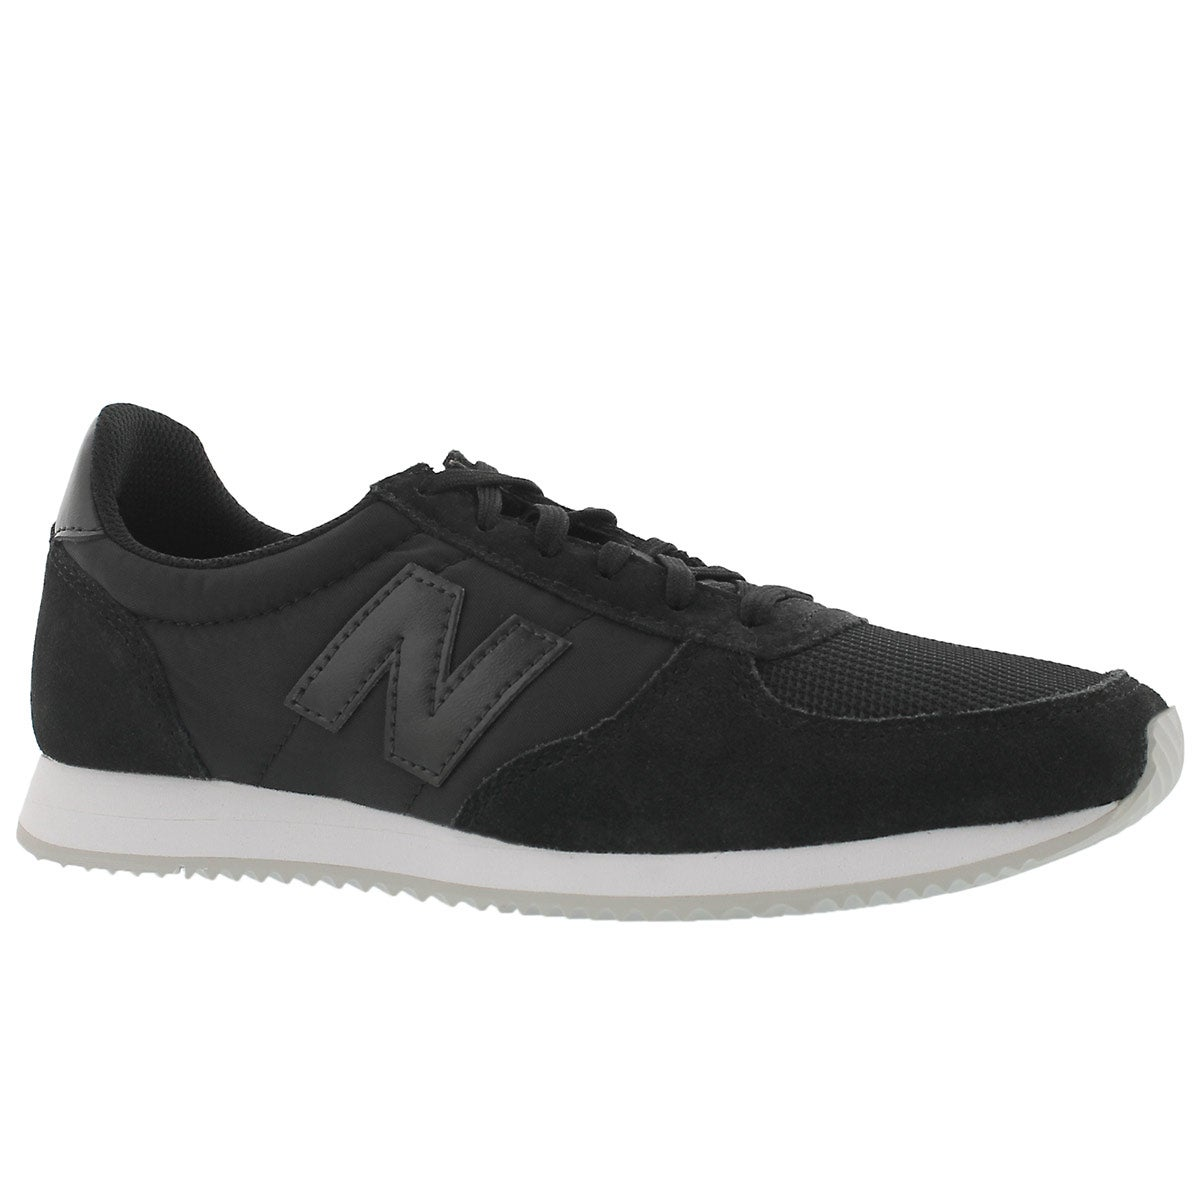 Women's 220 black lace up sneakers